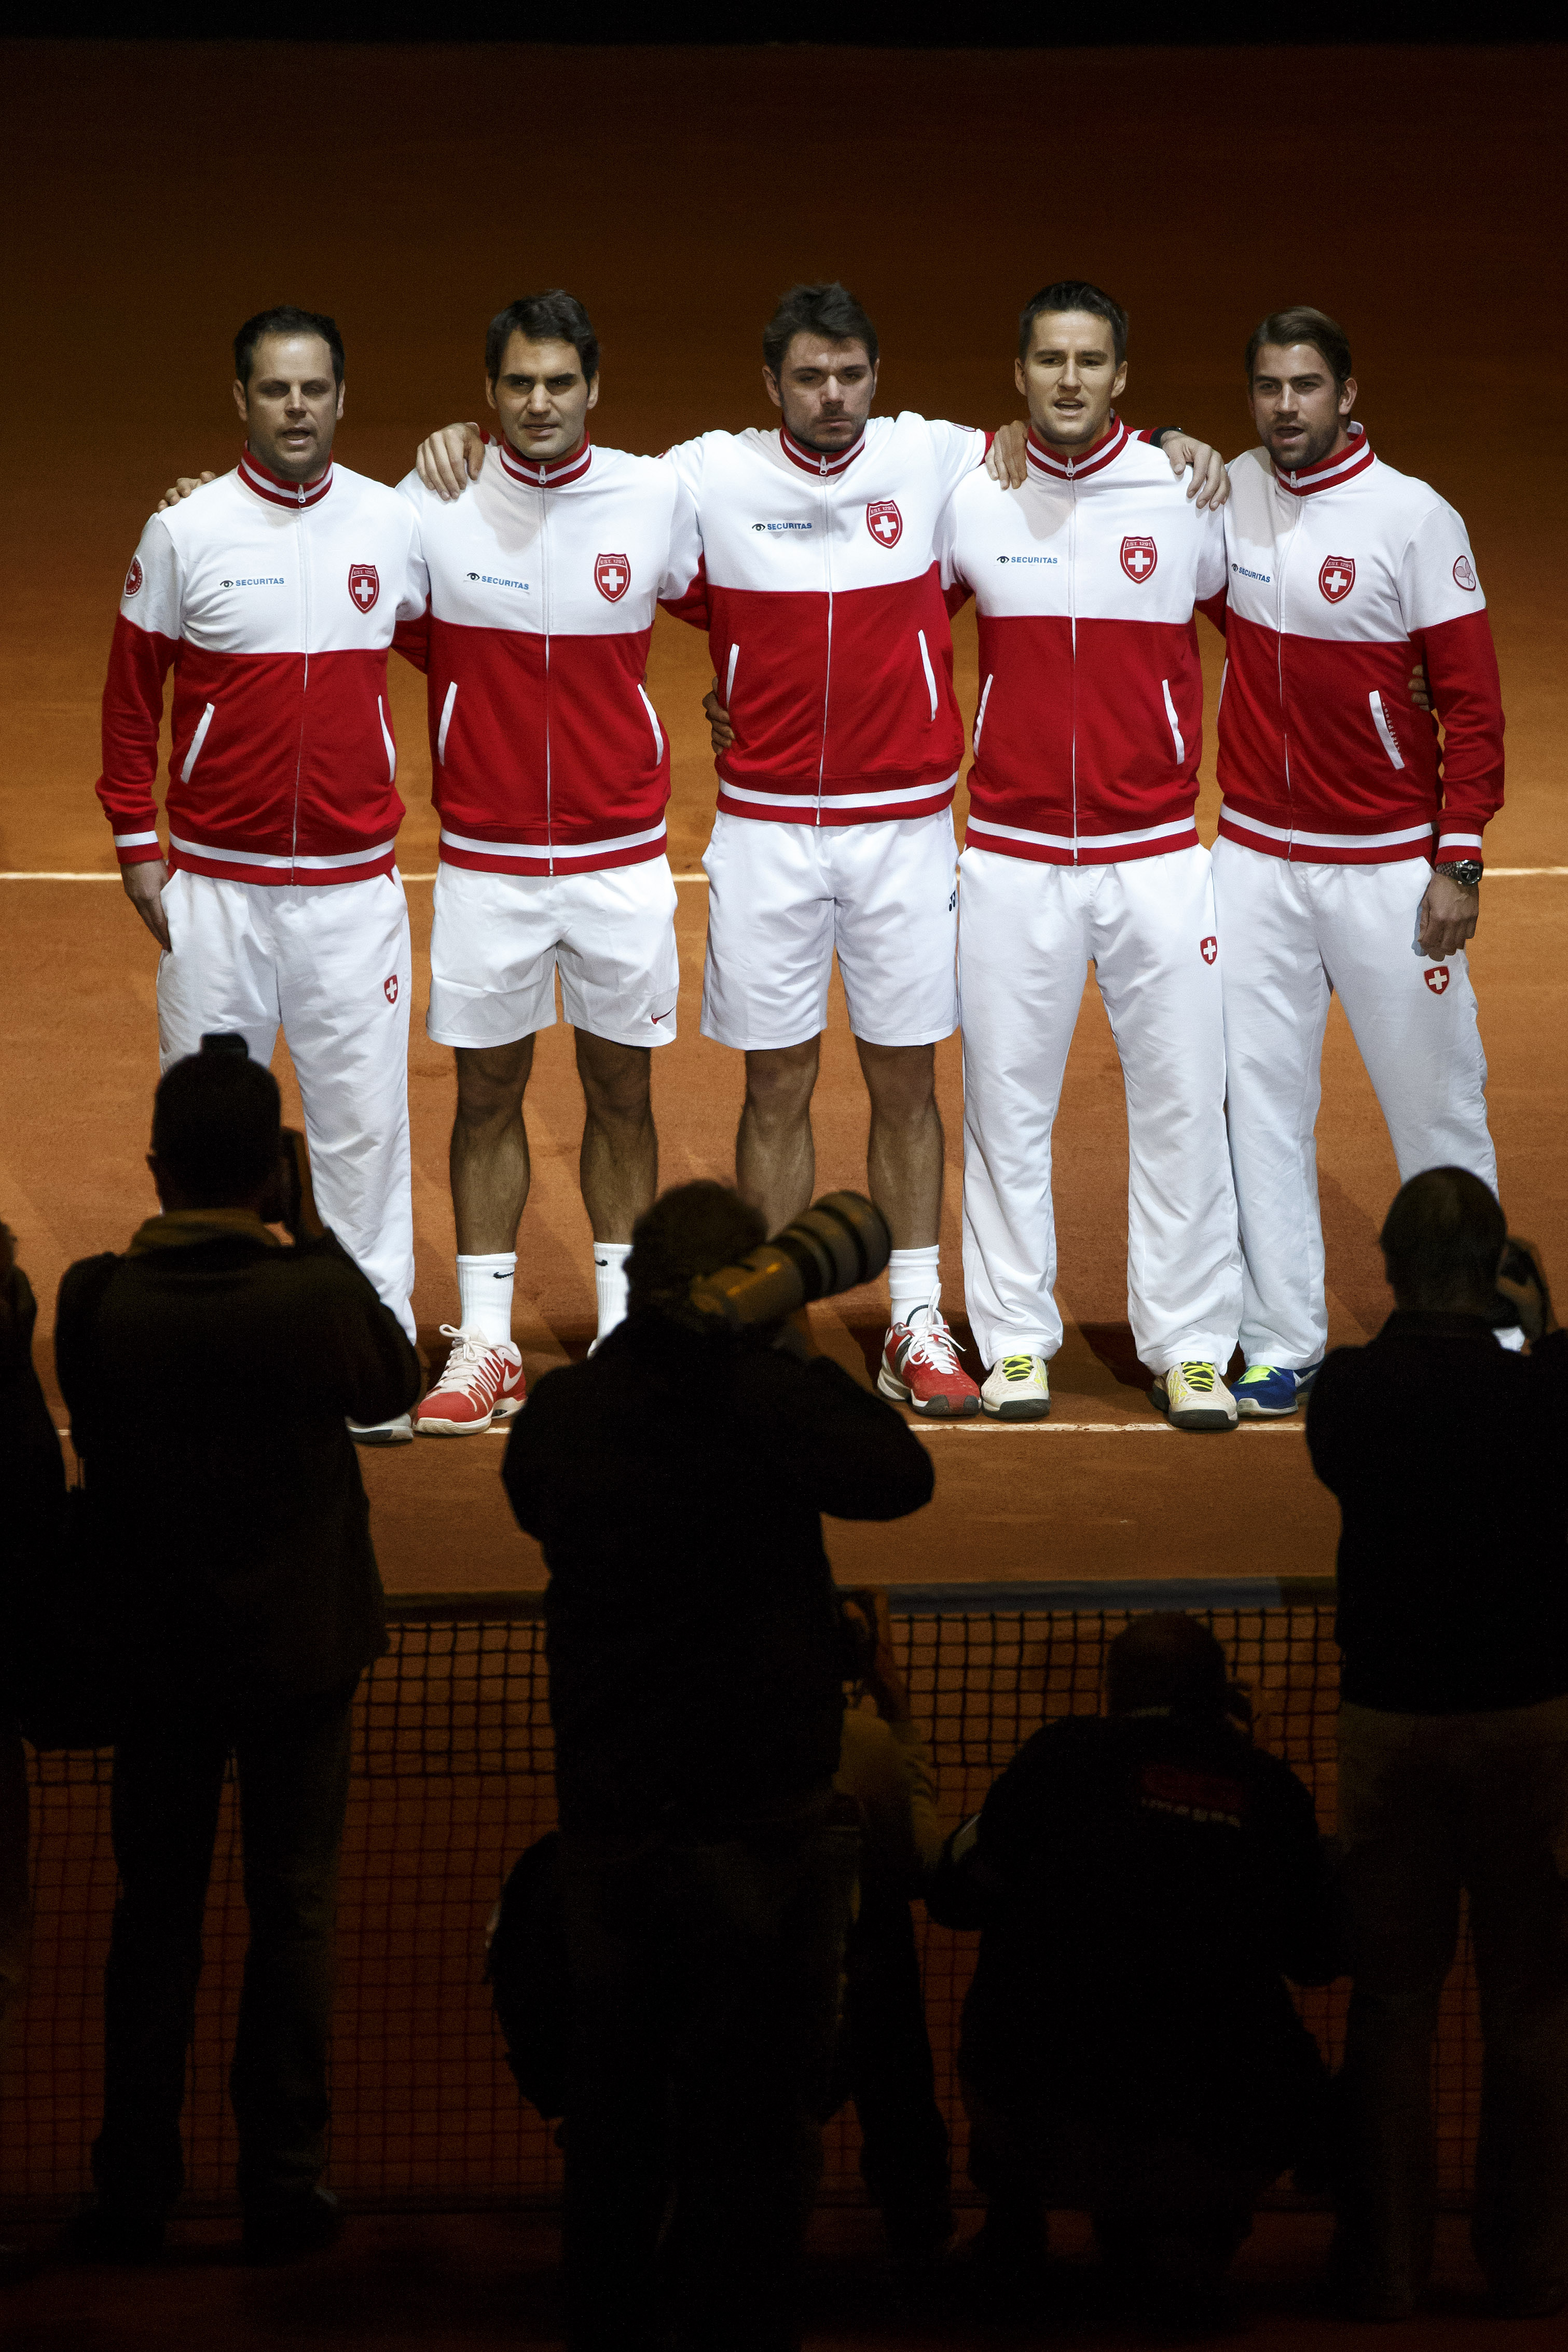 Swiss Davis Cup Team: from left to right, Swiss Davis Cup Team captain Severin Luethi, Roger Federer, Stan Wawrinka, Marco Chiudinelli, Michael Lammer, sing the Swiss anthem, during the ceremony prior the double match of the Davis Cup Final between France and Switzerland, at the Stadium Pierre Mauroy in Lille, France, Saturday, November 22, 2014. (KEYSTONE/Salvatore Di Nolfi)